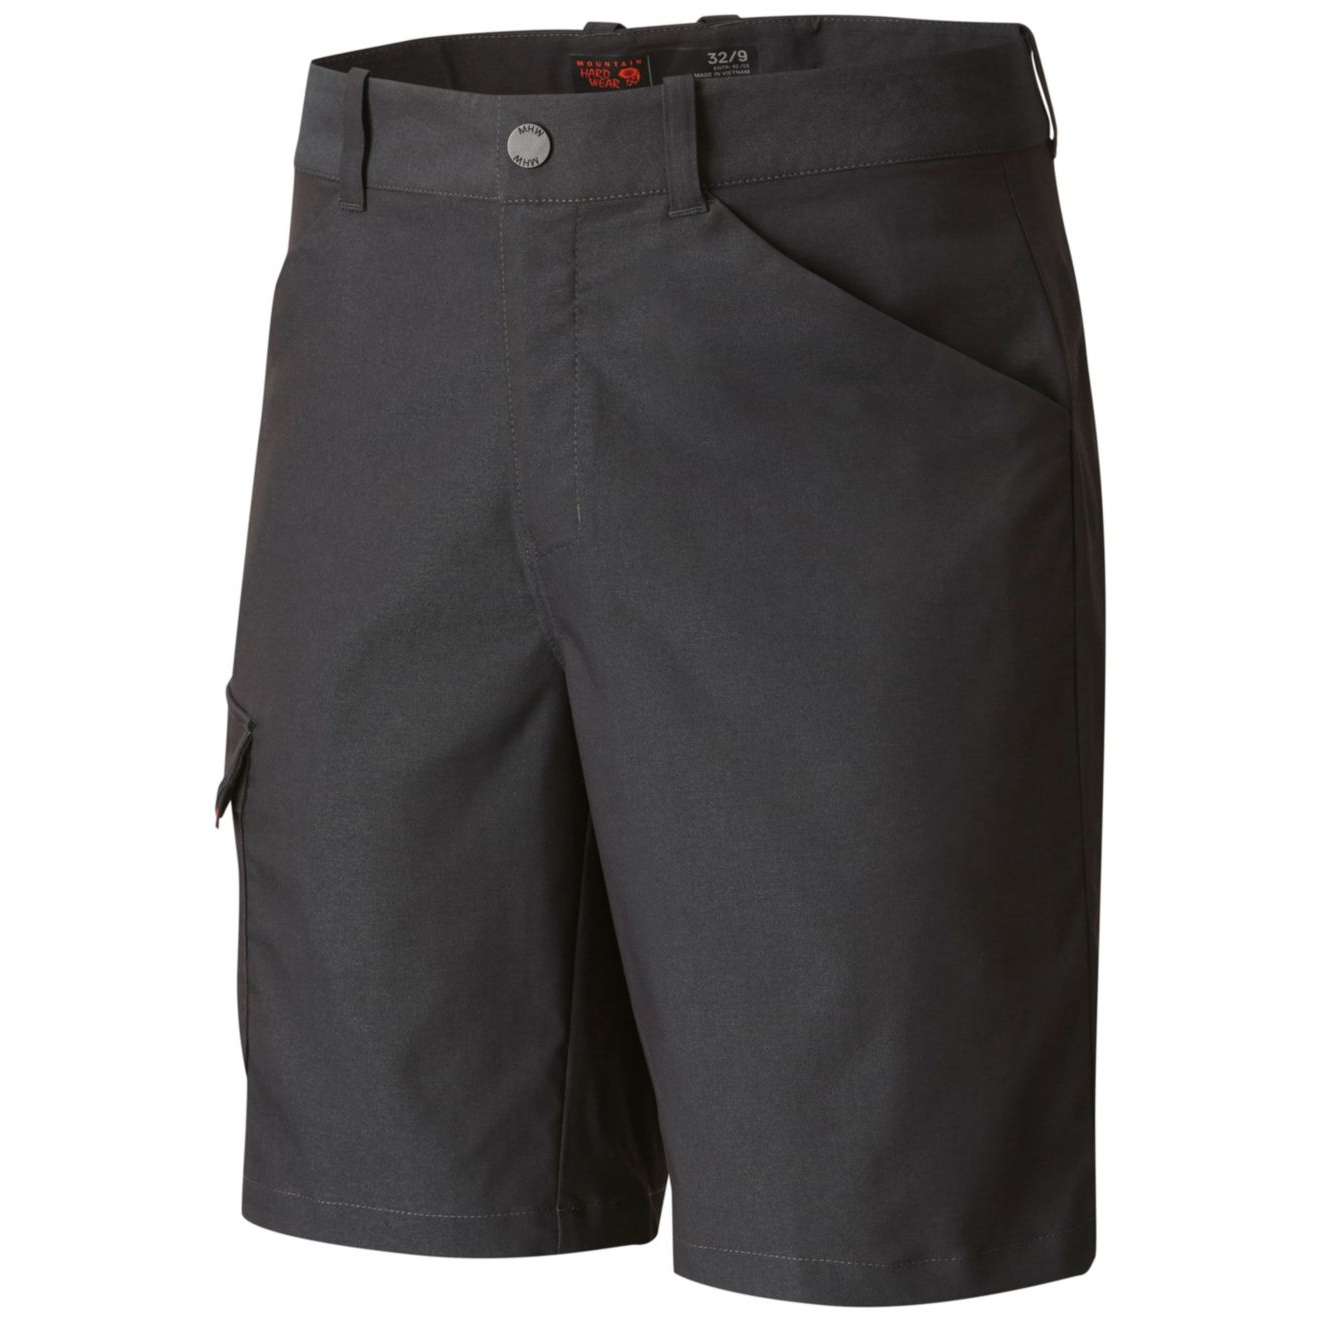 Mountain Hardwear Men's Canyon Pro™ Short